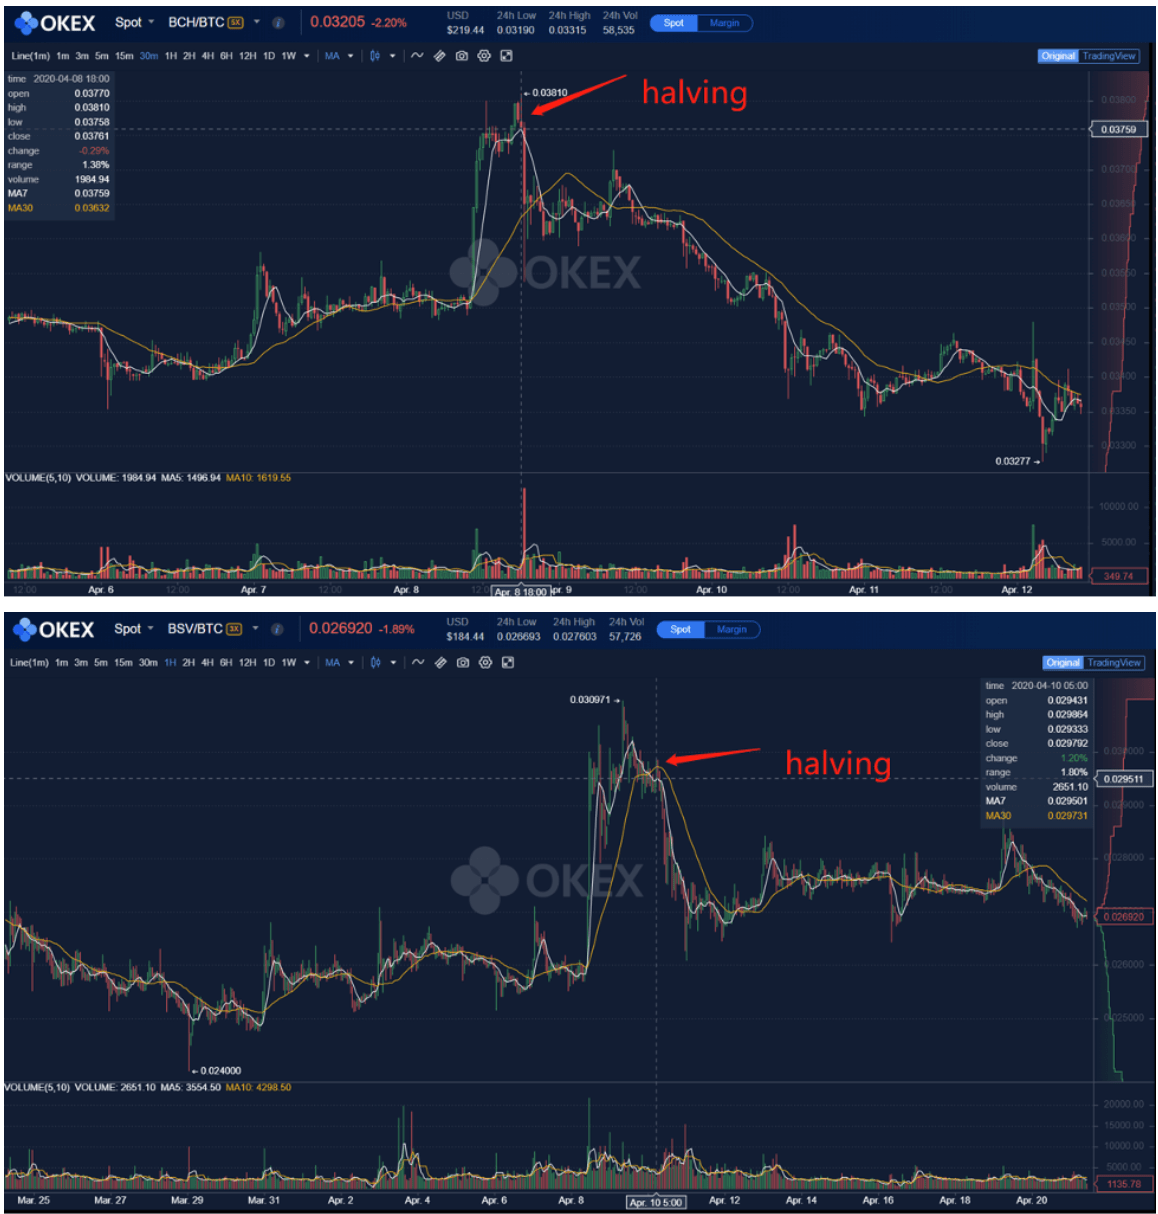 Bitcoin Cash and Bitcoin SV Price Action Around Their Halving. (Source: OKEx)